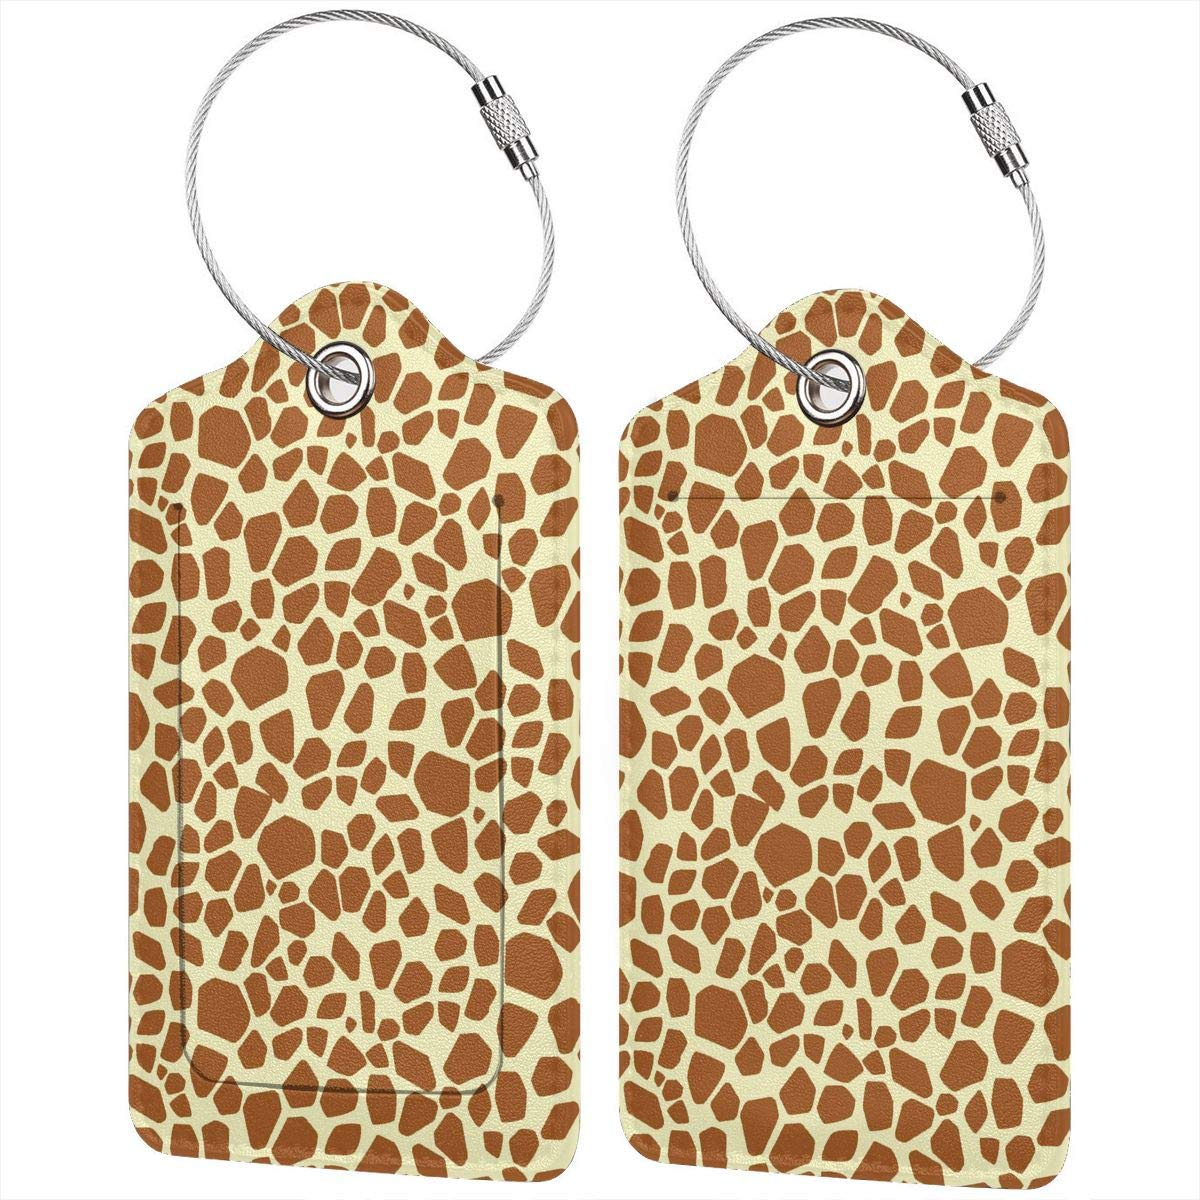 Giraffe Skin Leather Luggage Tags Personalized Privacy Cover With Privacy Flap